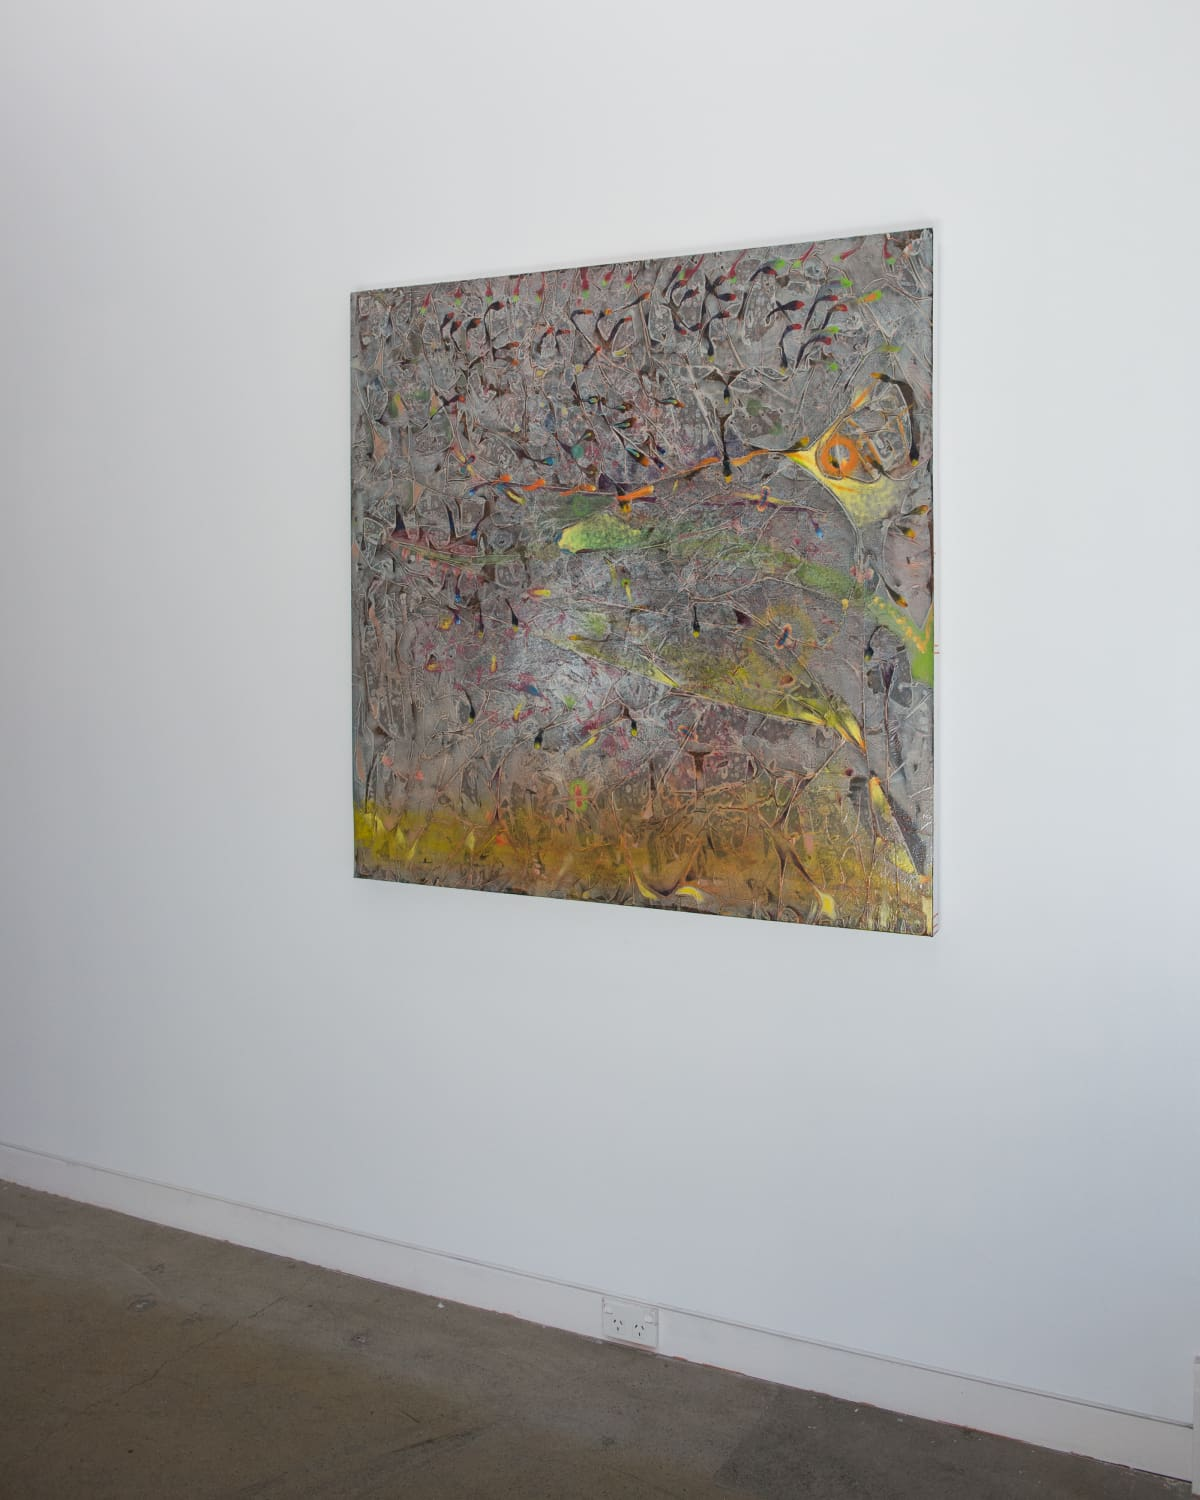 Derek Cowie Further Reading; Riparian Planting, 2018 Oil on canvas 122 x 122 cm 48 1/8 x 48 1/8 in